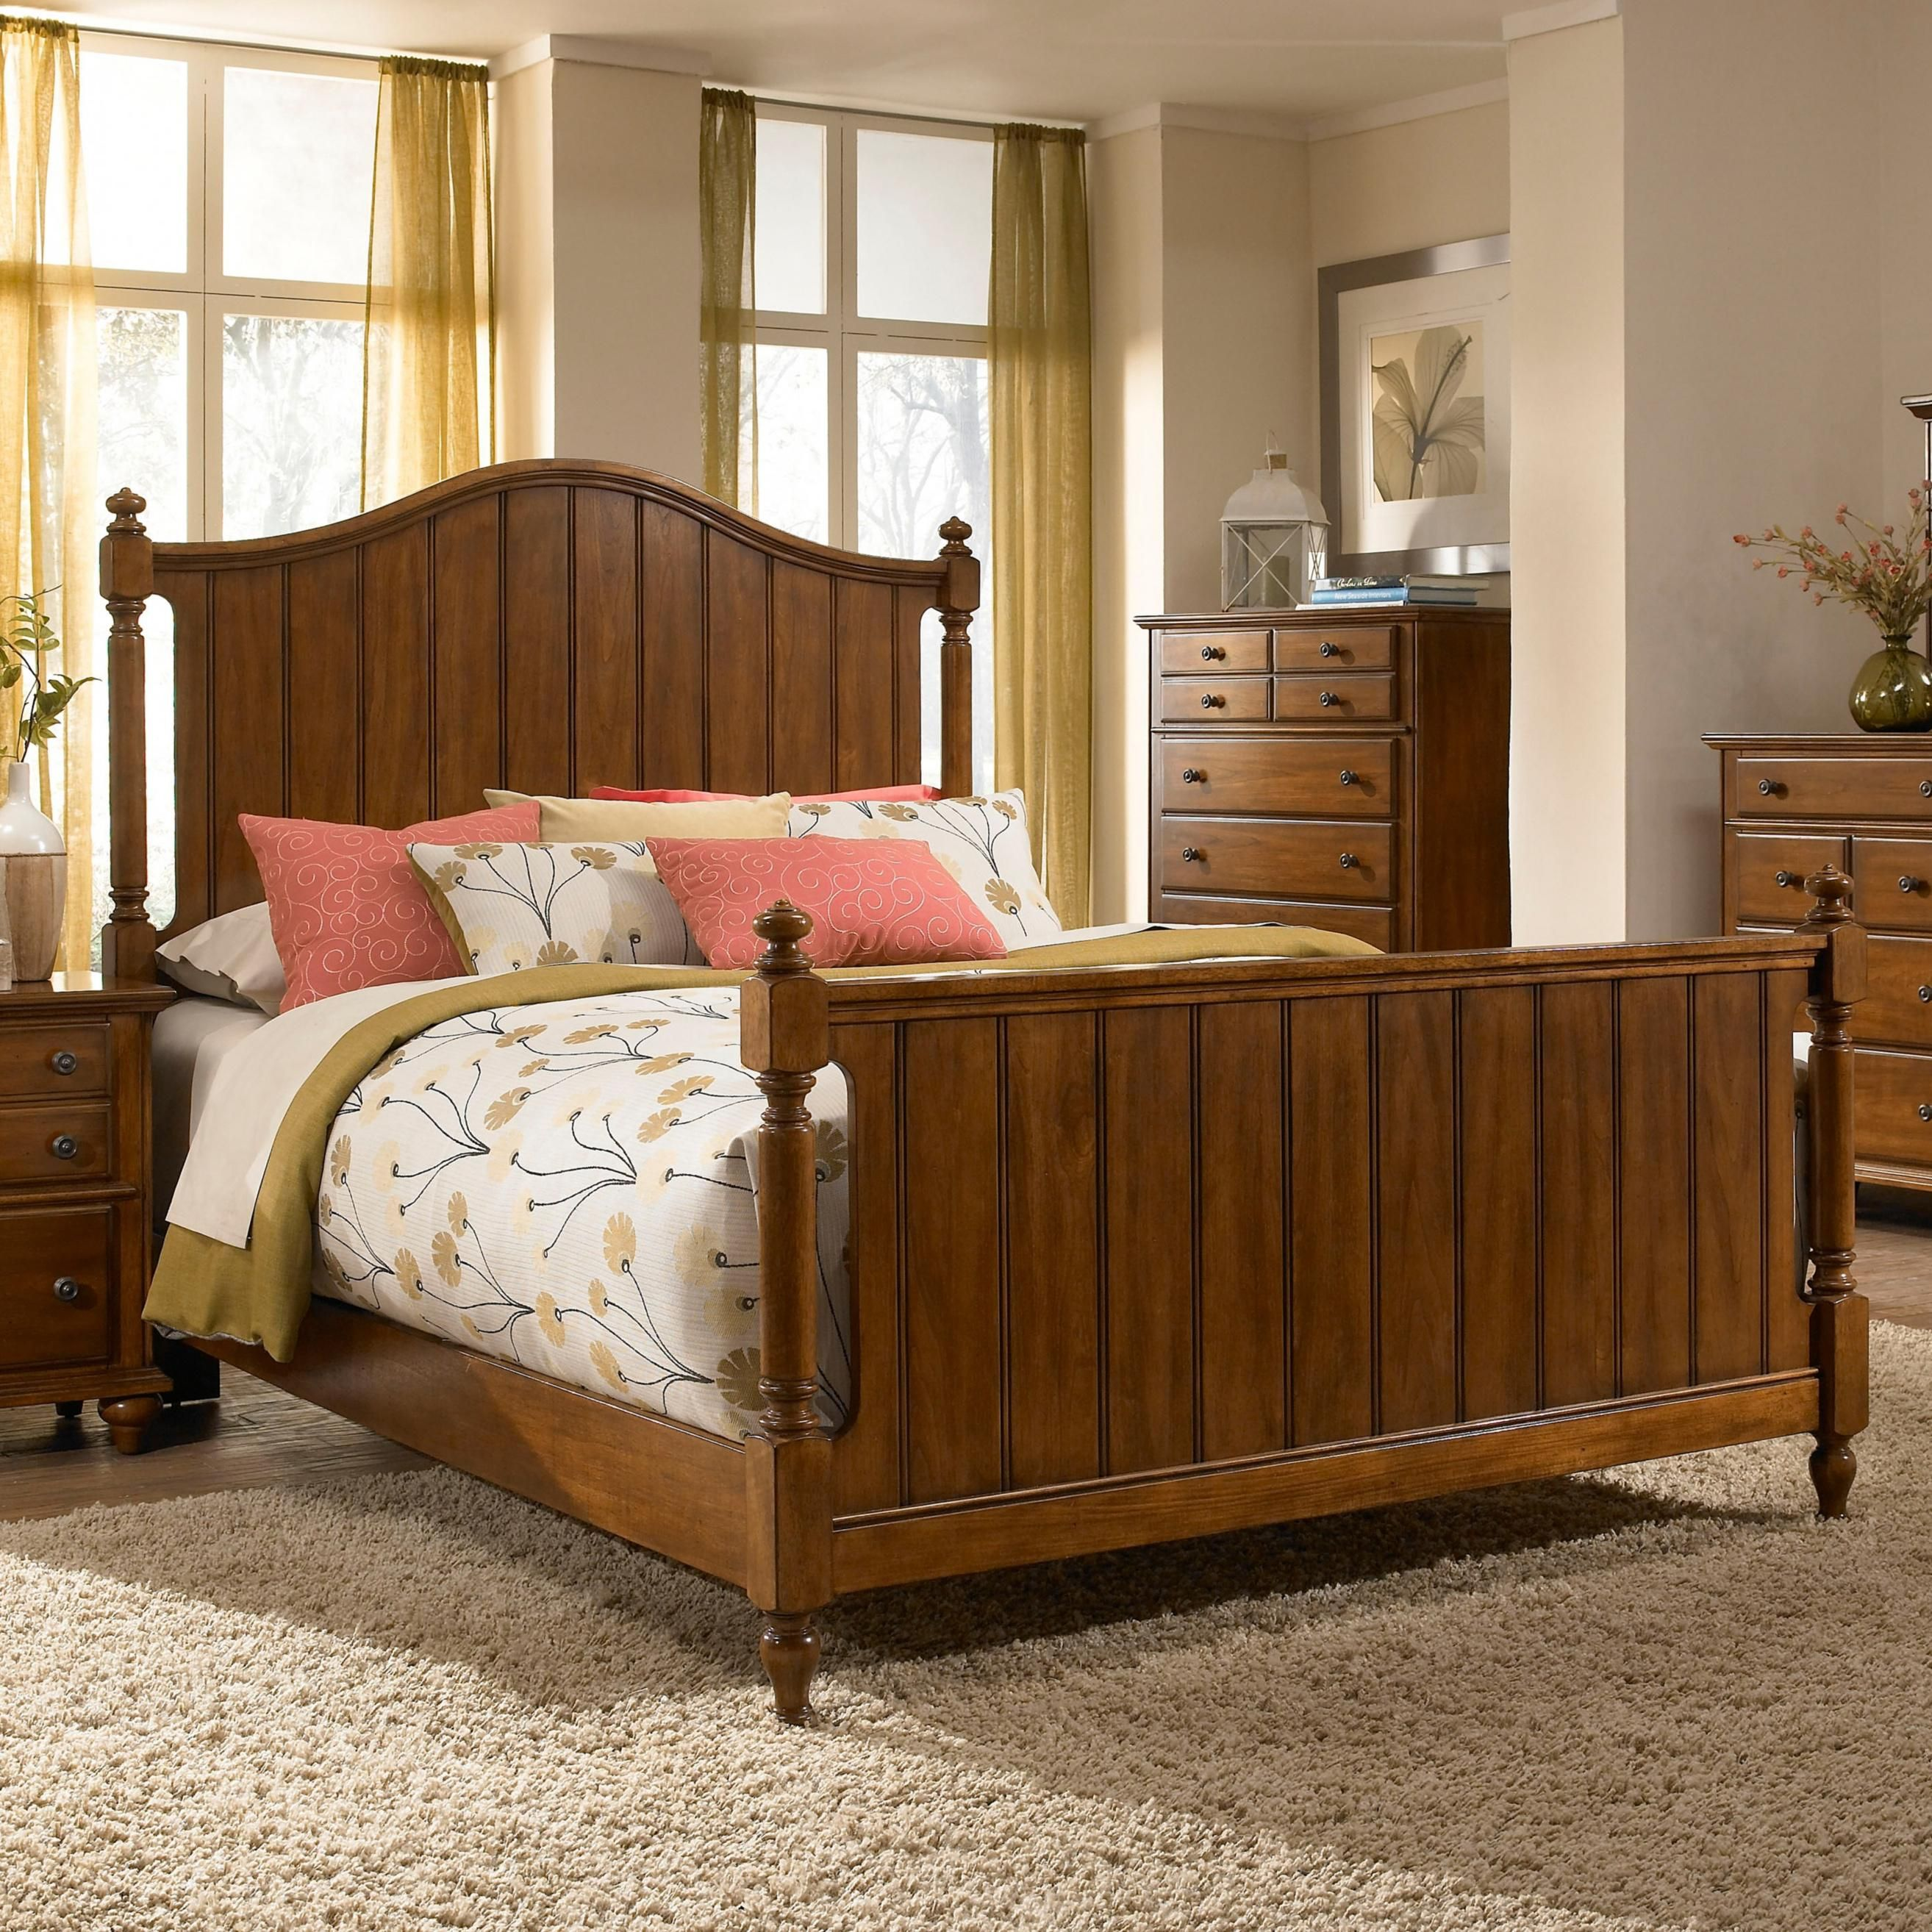 Hayden Place King Headboard and Footboard Bed by Broyhill